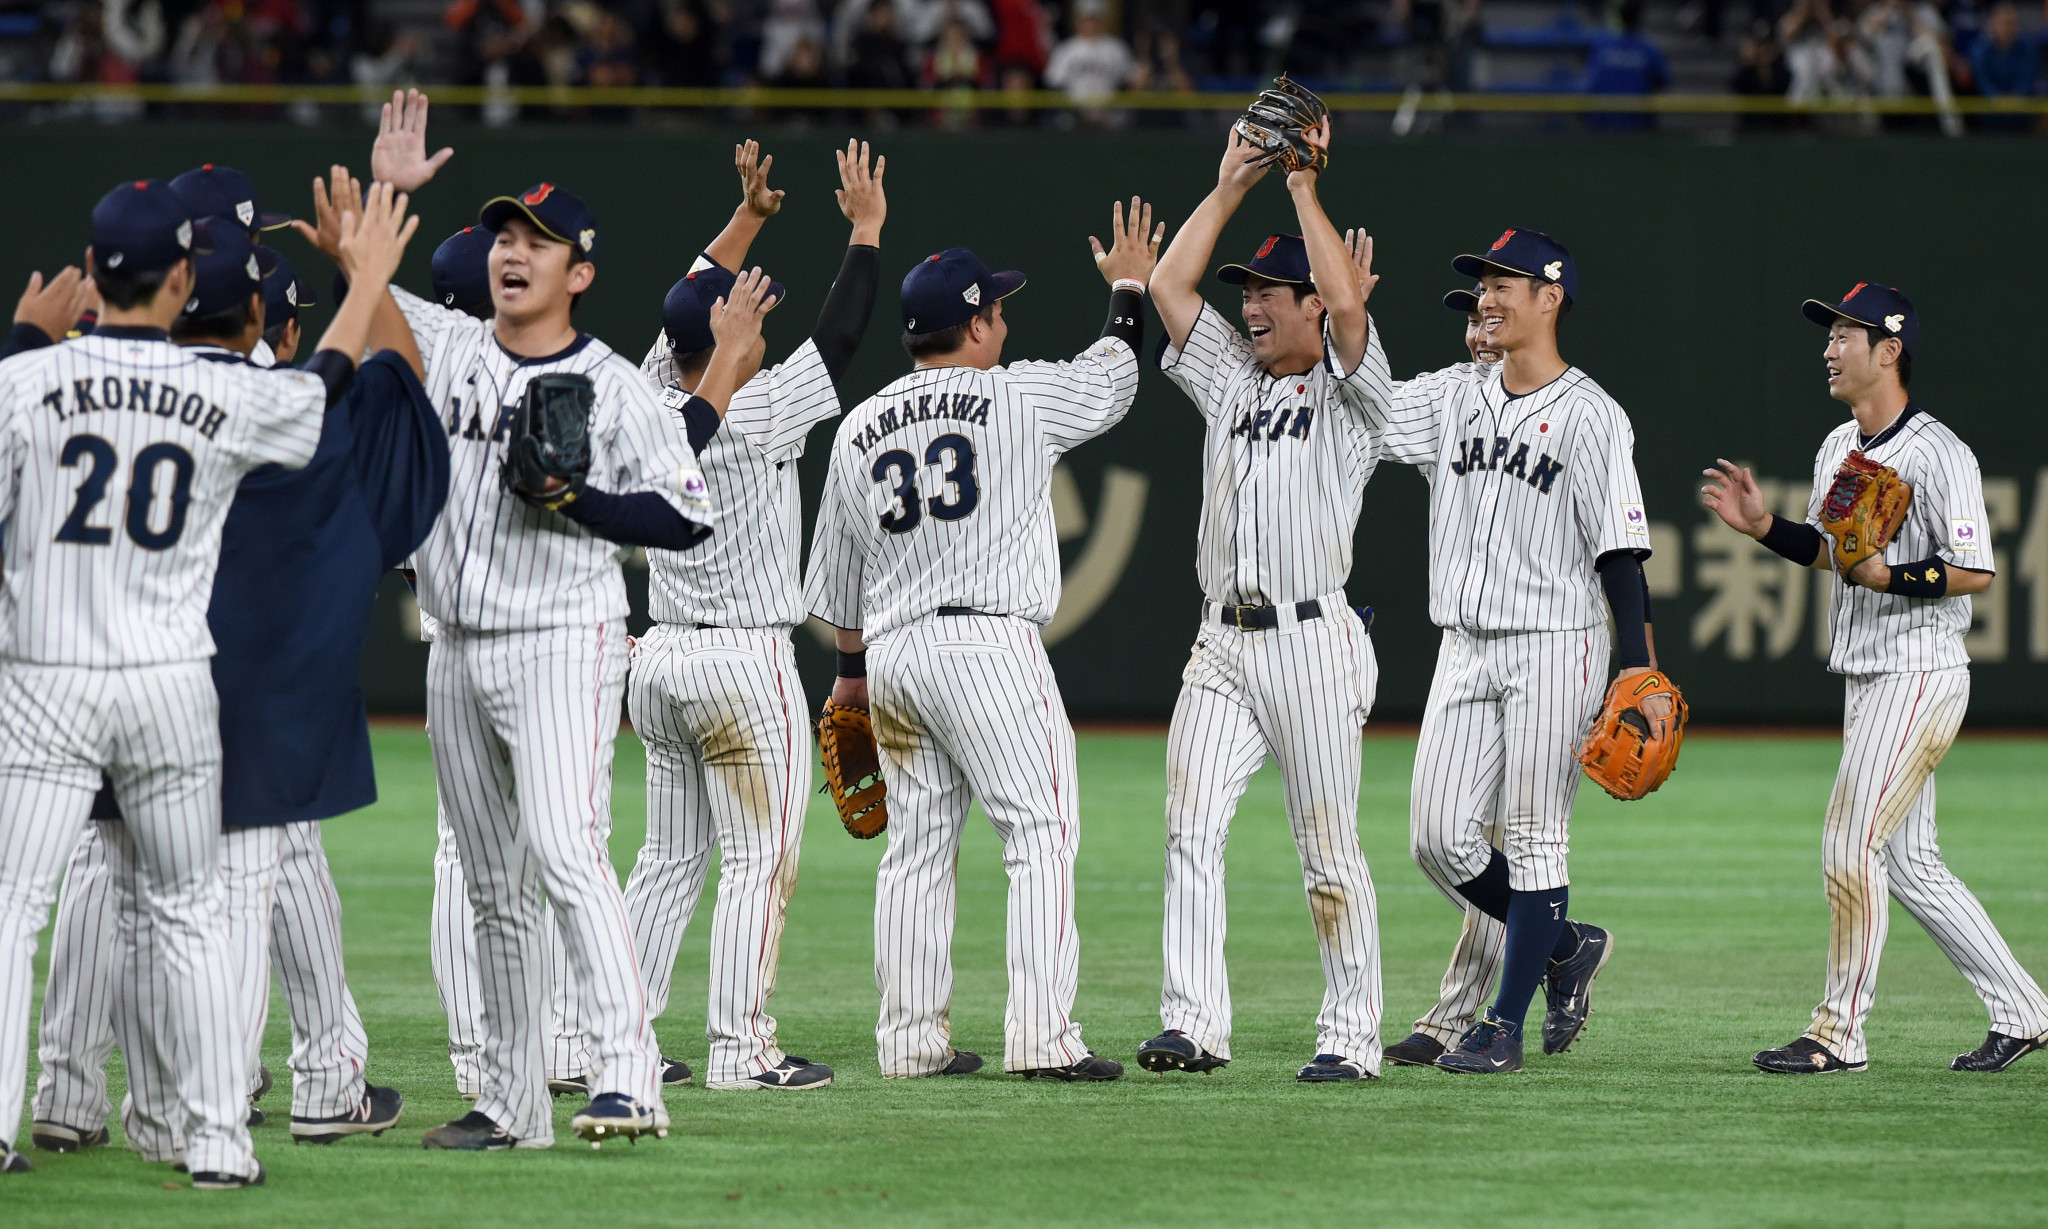 Japan remains the top-ranked WBSC Baseball World Rankings side for men ©Getty Images